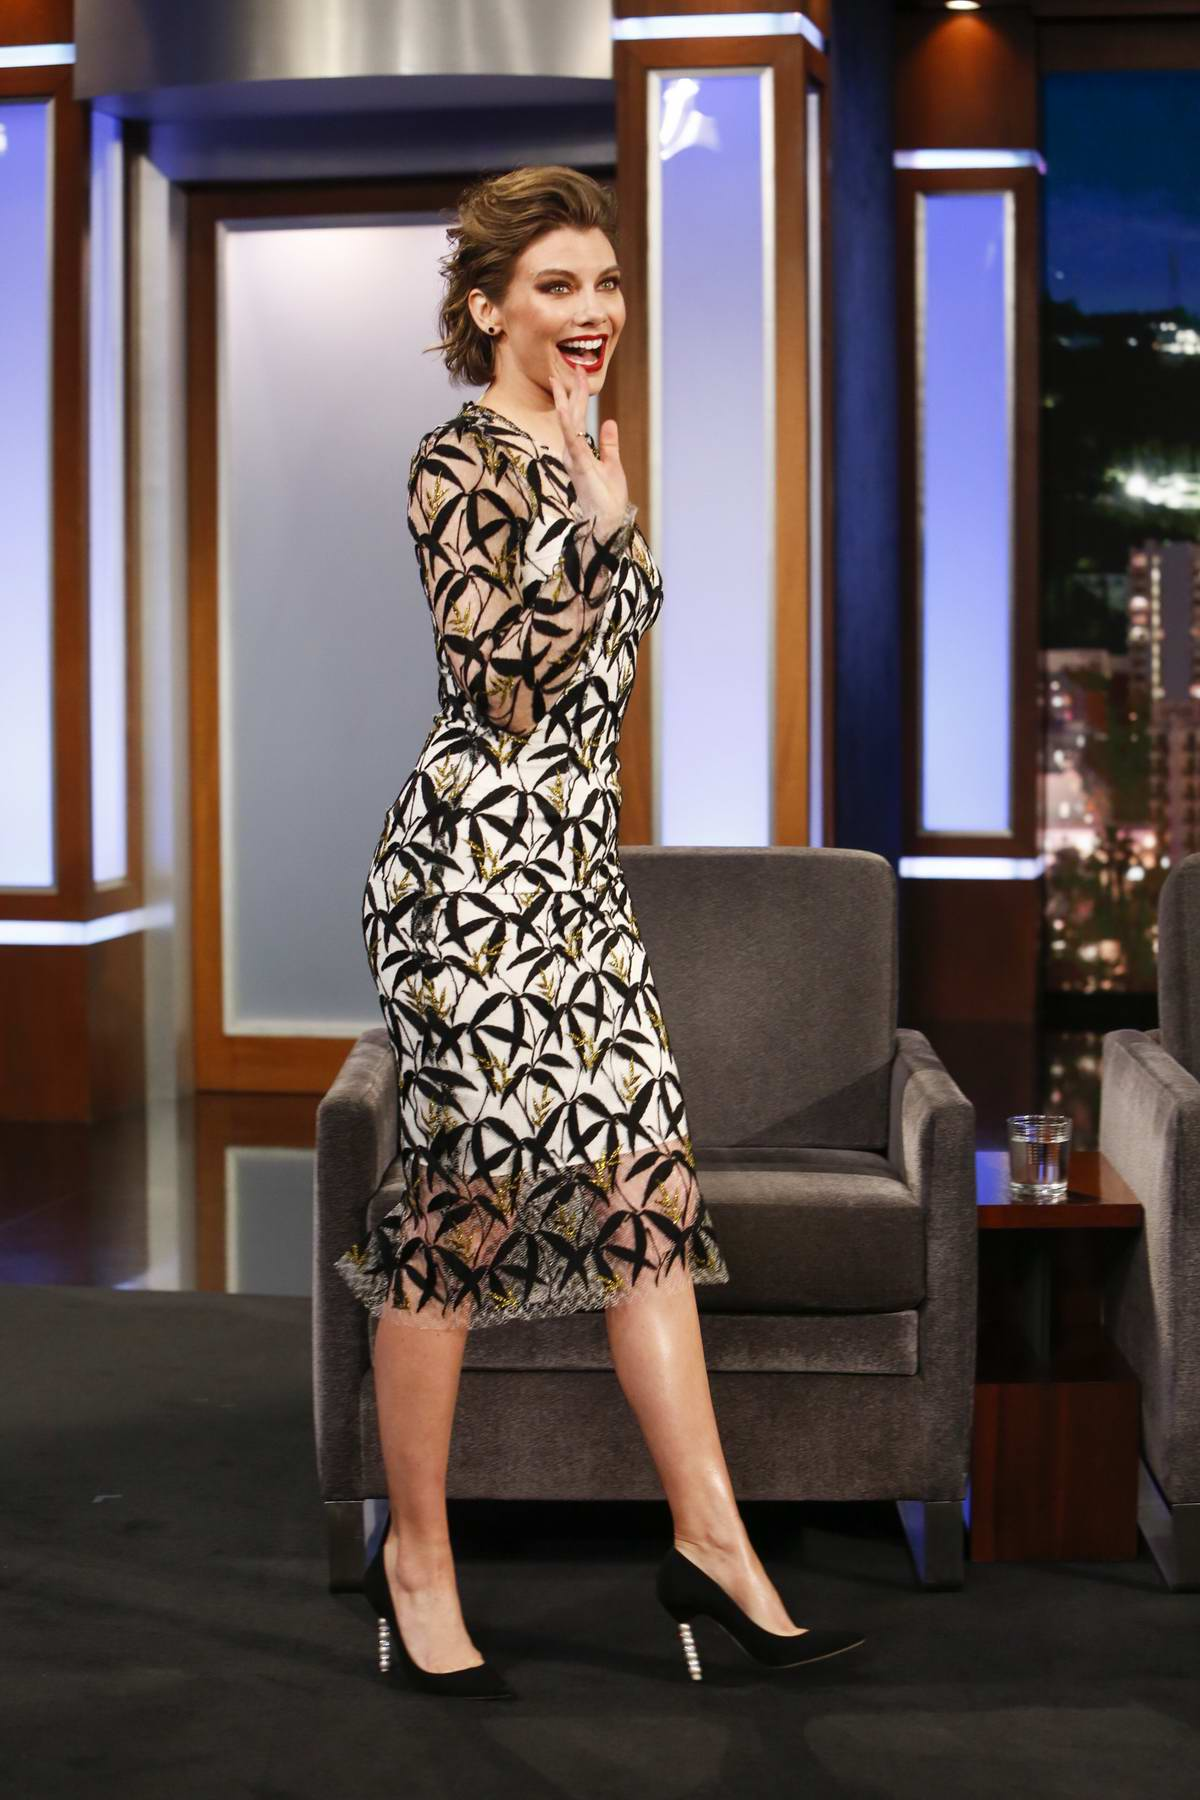 Lauren Cohan makes an appearance on 'Jimmy Kimmel Live!' in Los Angeles